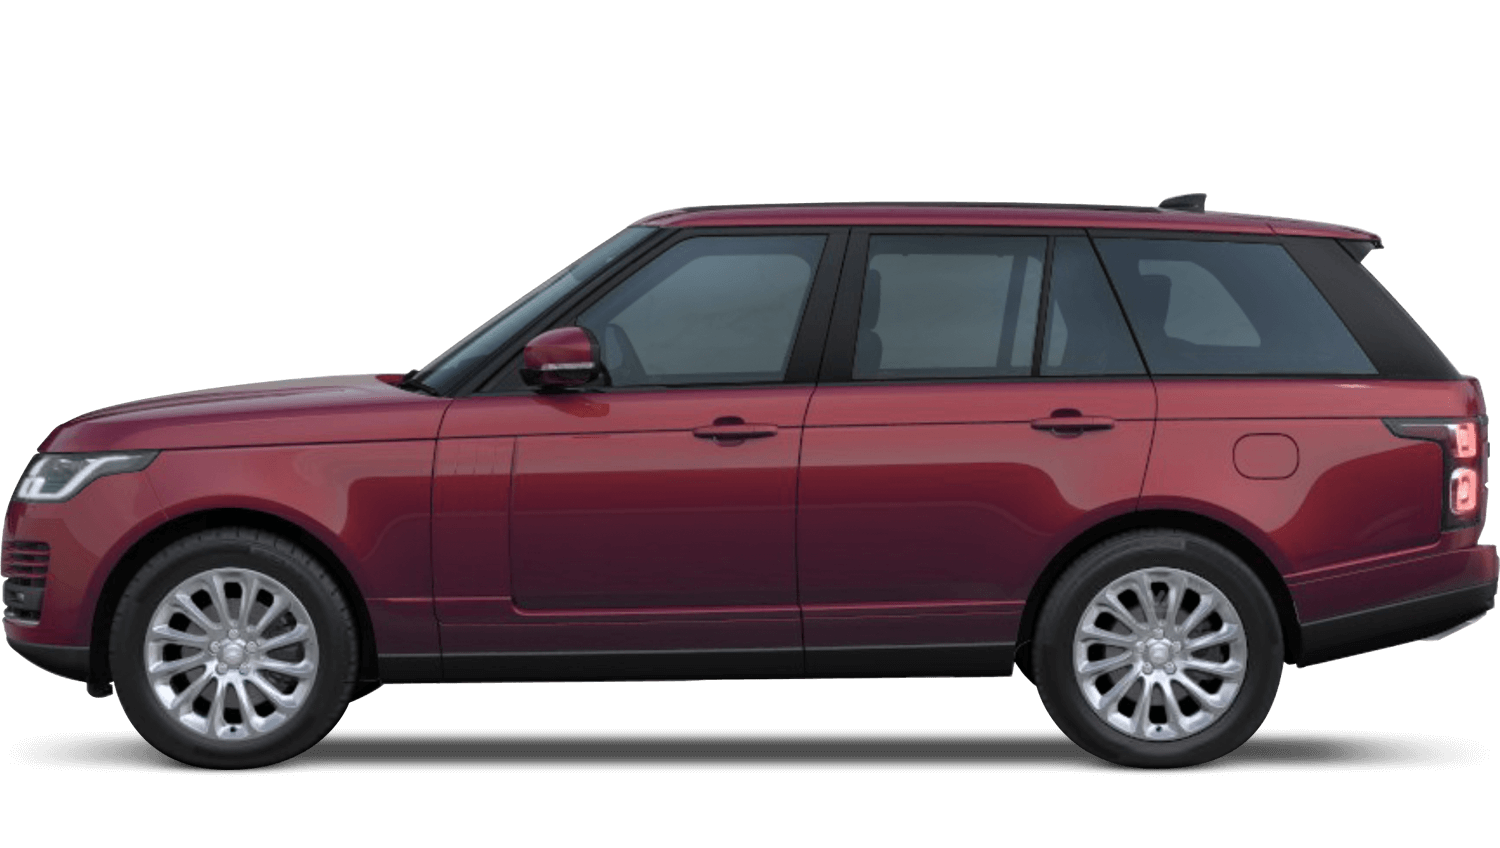 Spectral Racing Red (ChromaFlair) Land Rover Range Rover Phev